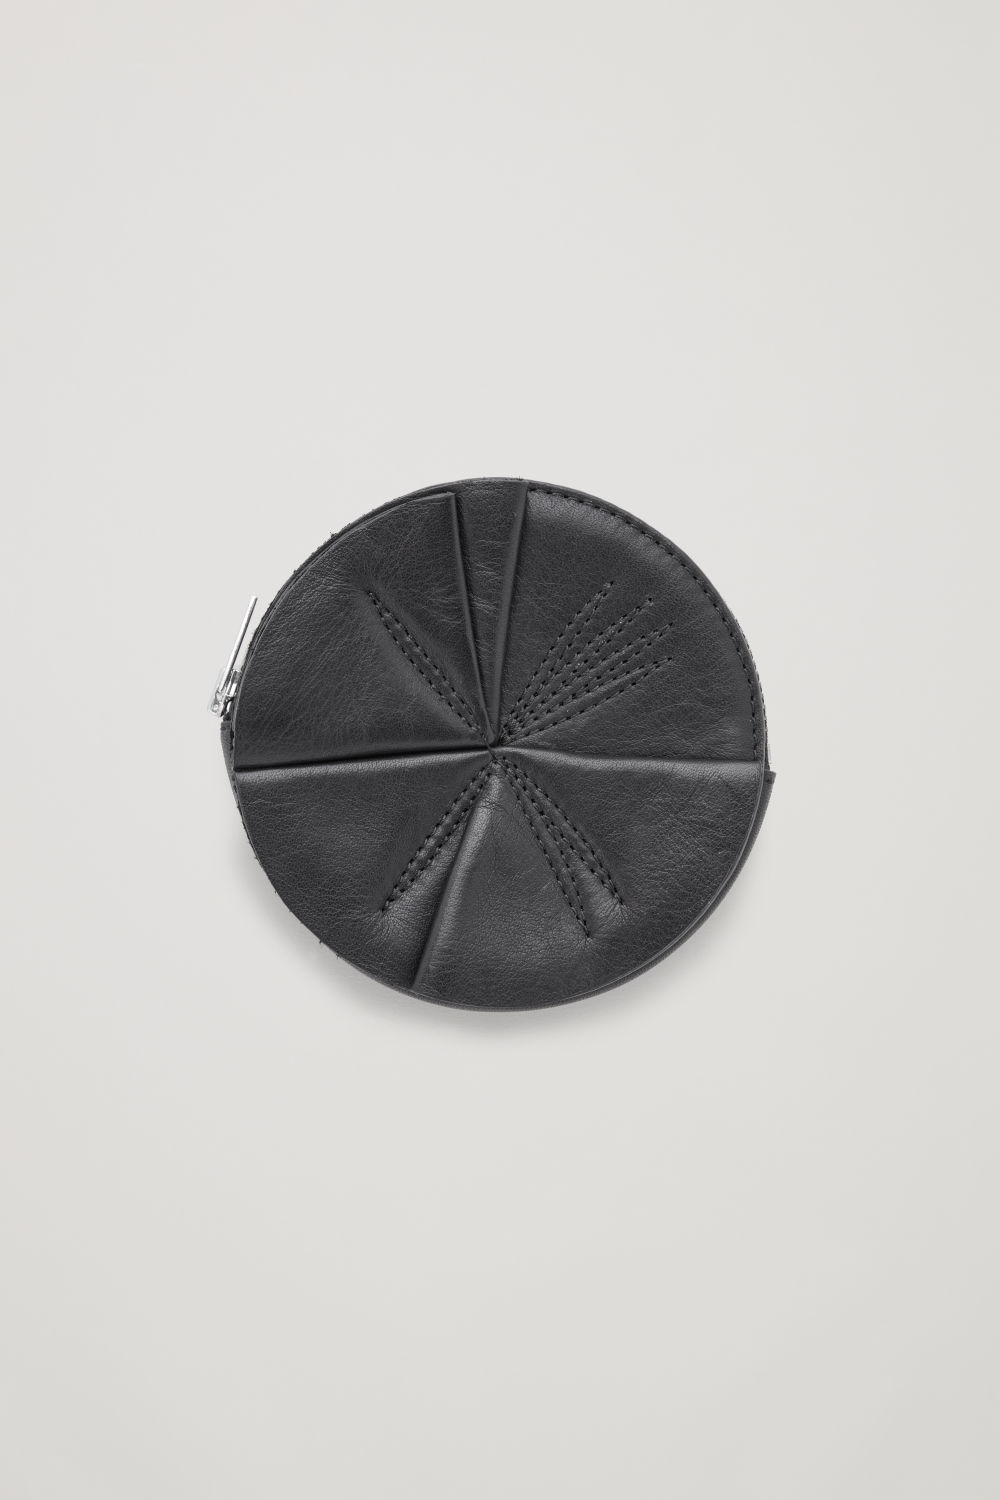 CIRCLE LEATHER COIN PURSE